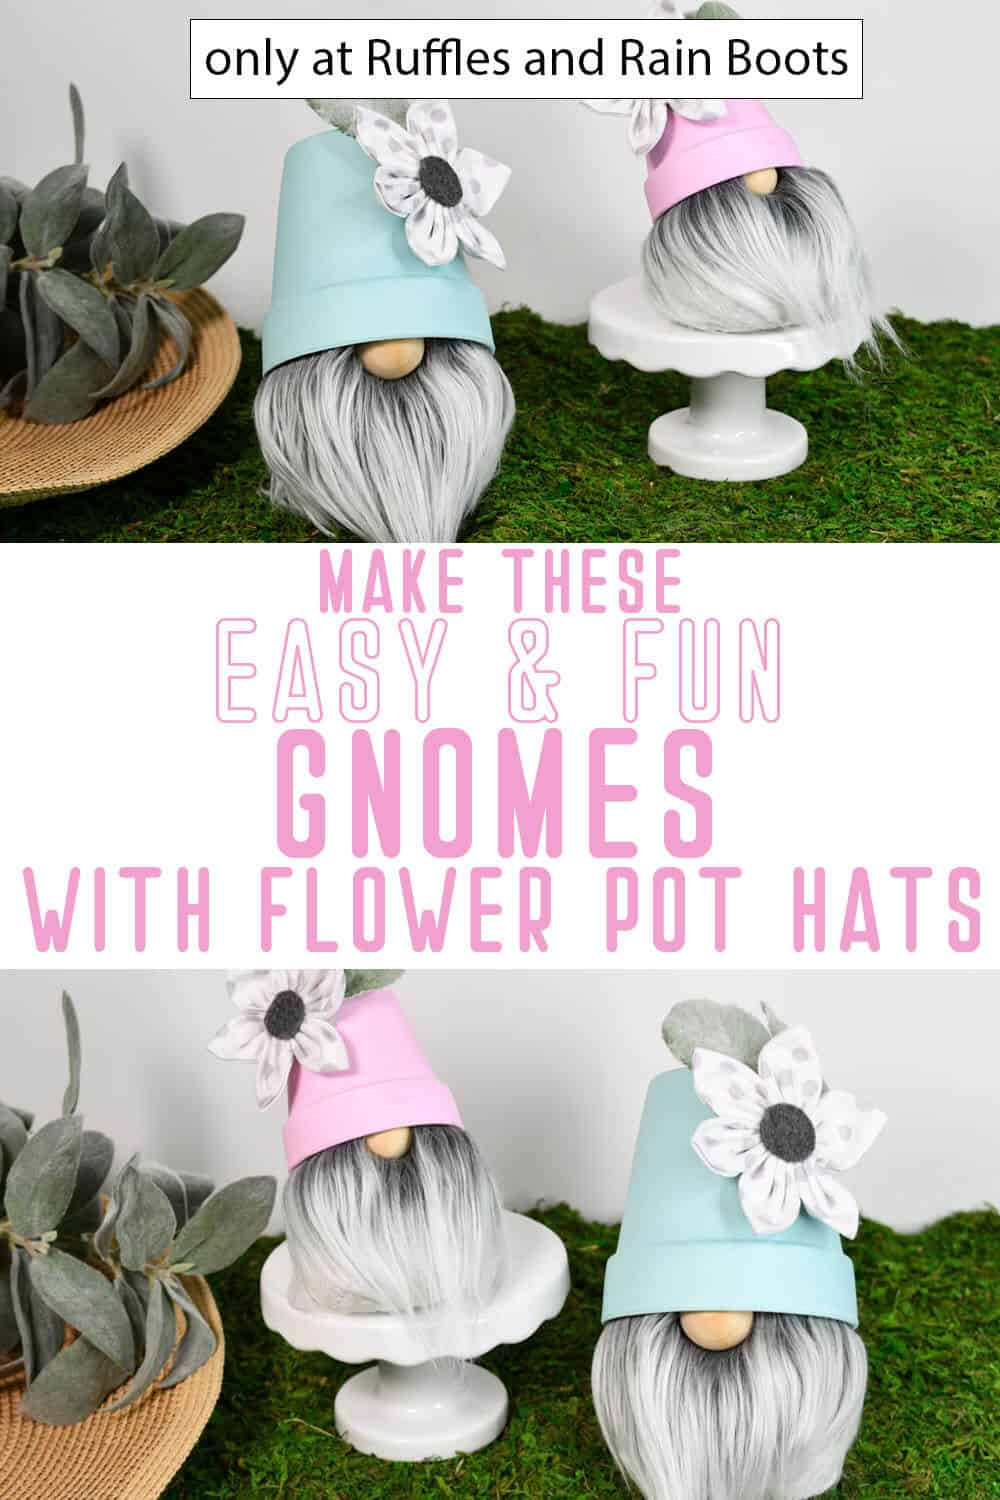 photo collage of diy sock gnome with a flower pot hat with text which reads make these easy & fun gnomes with flower pot hats